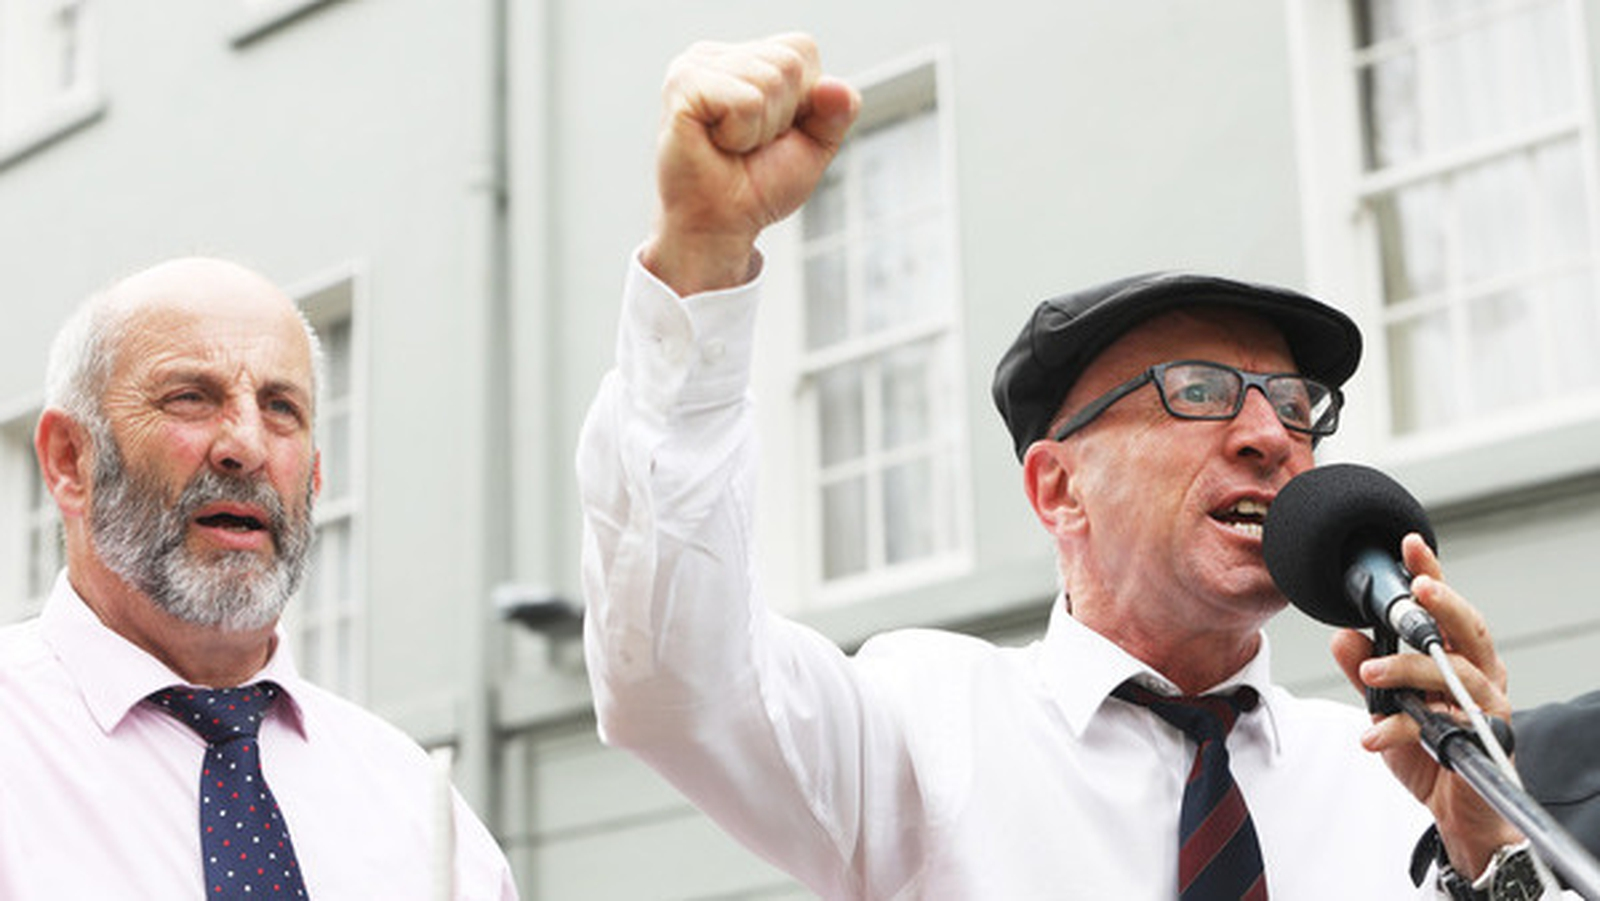 Image - Danny Healy-Rae and his brother Michael (Credit Rollingnews.ie)